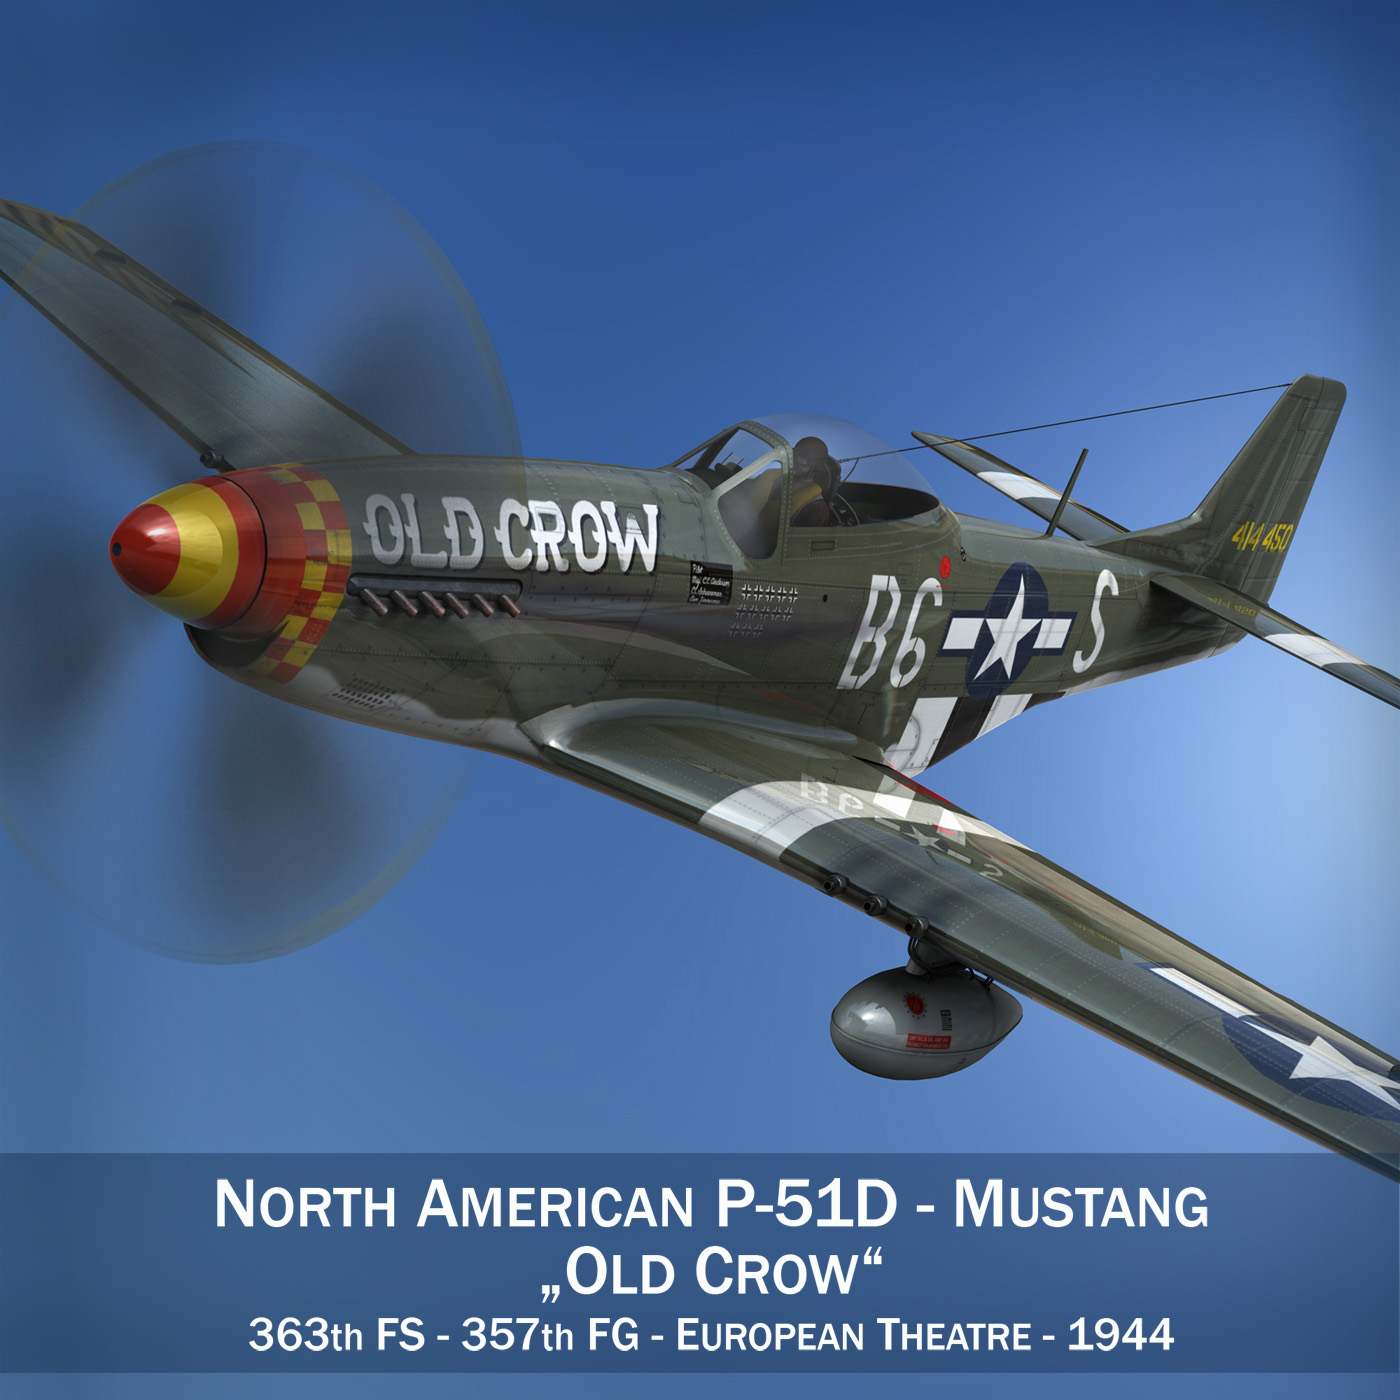 north american p-51d mustang – old crow 3d model fbx c4d lwo obj 273332